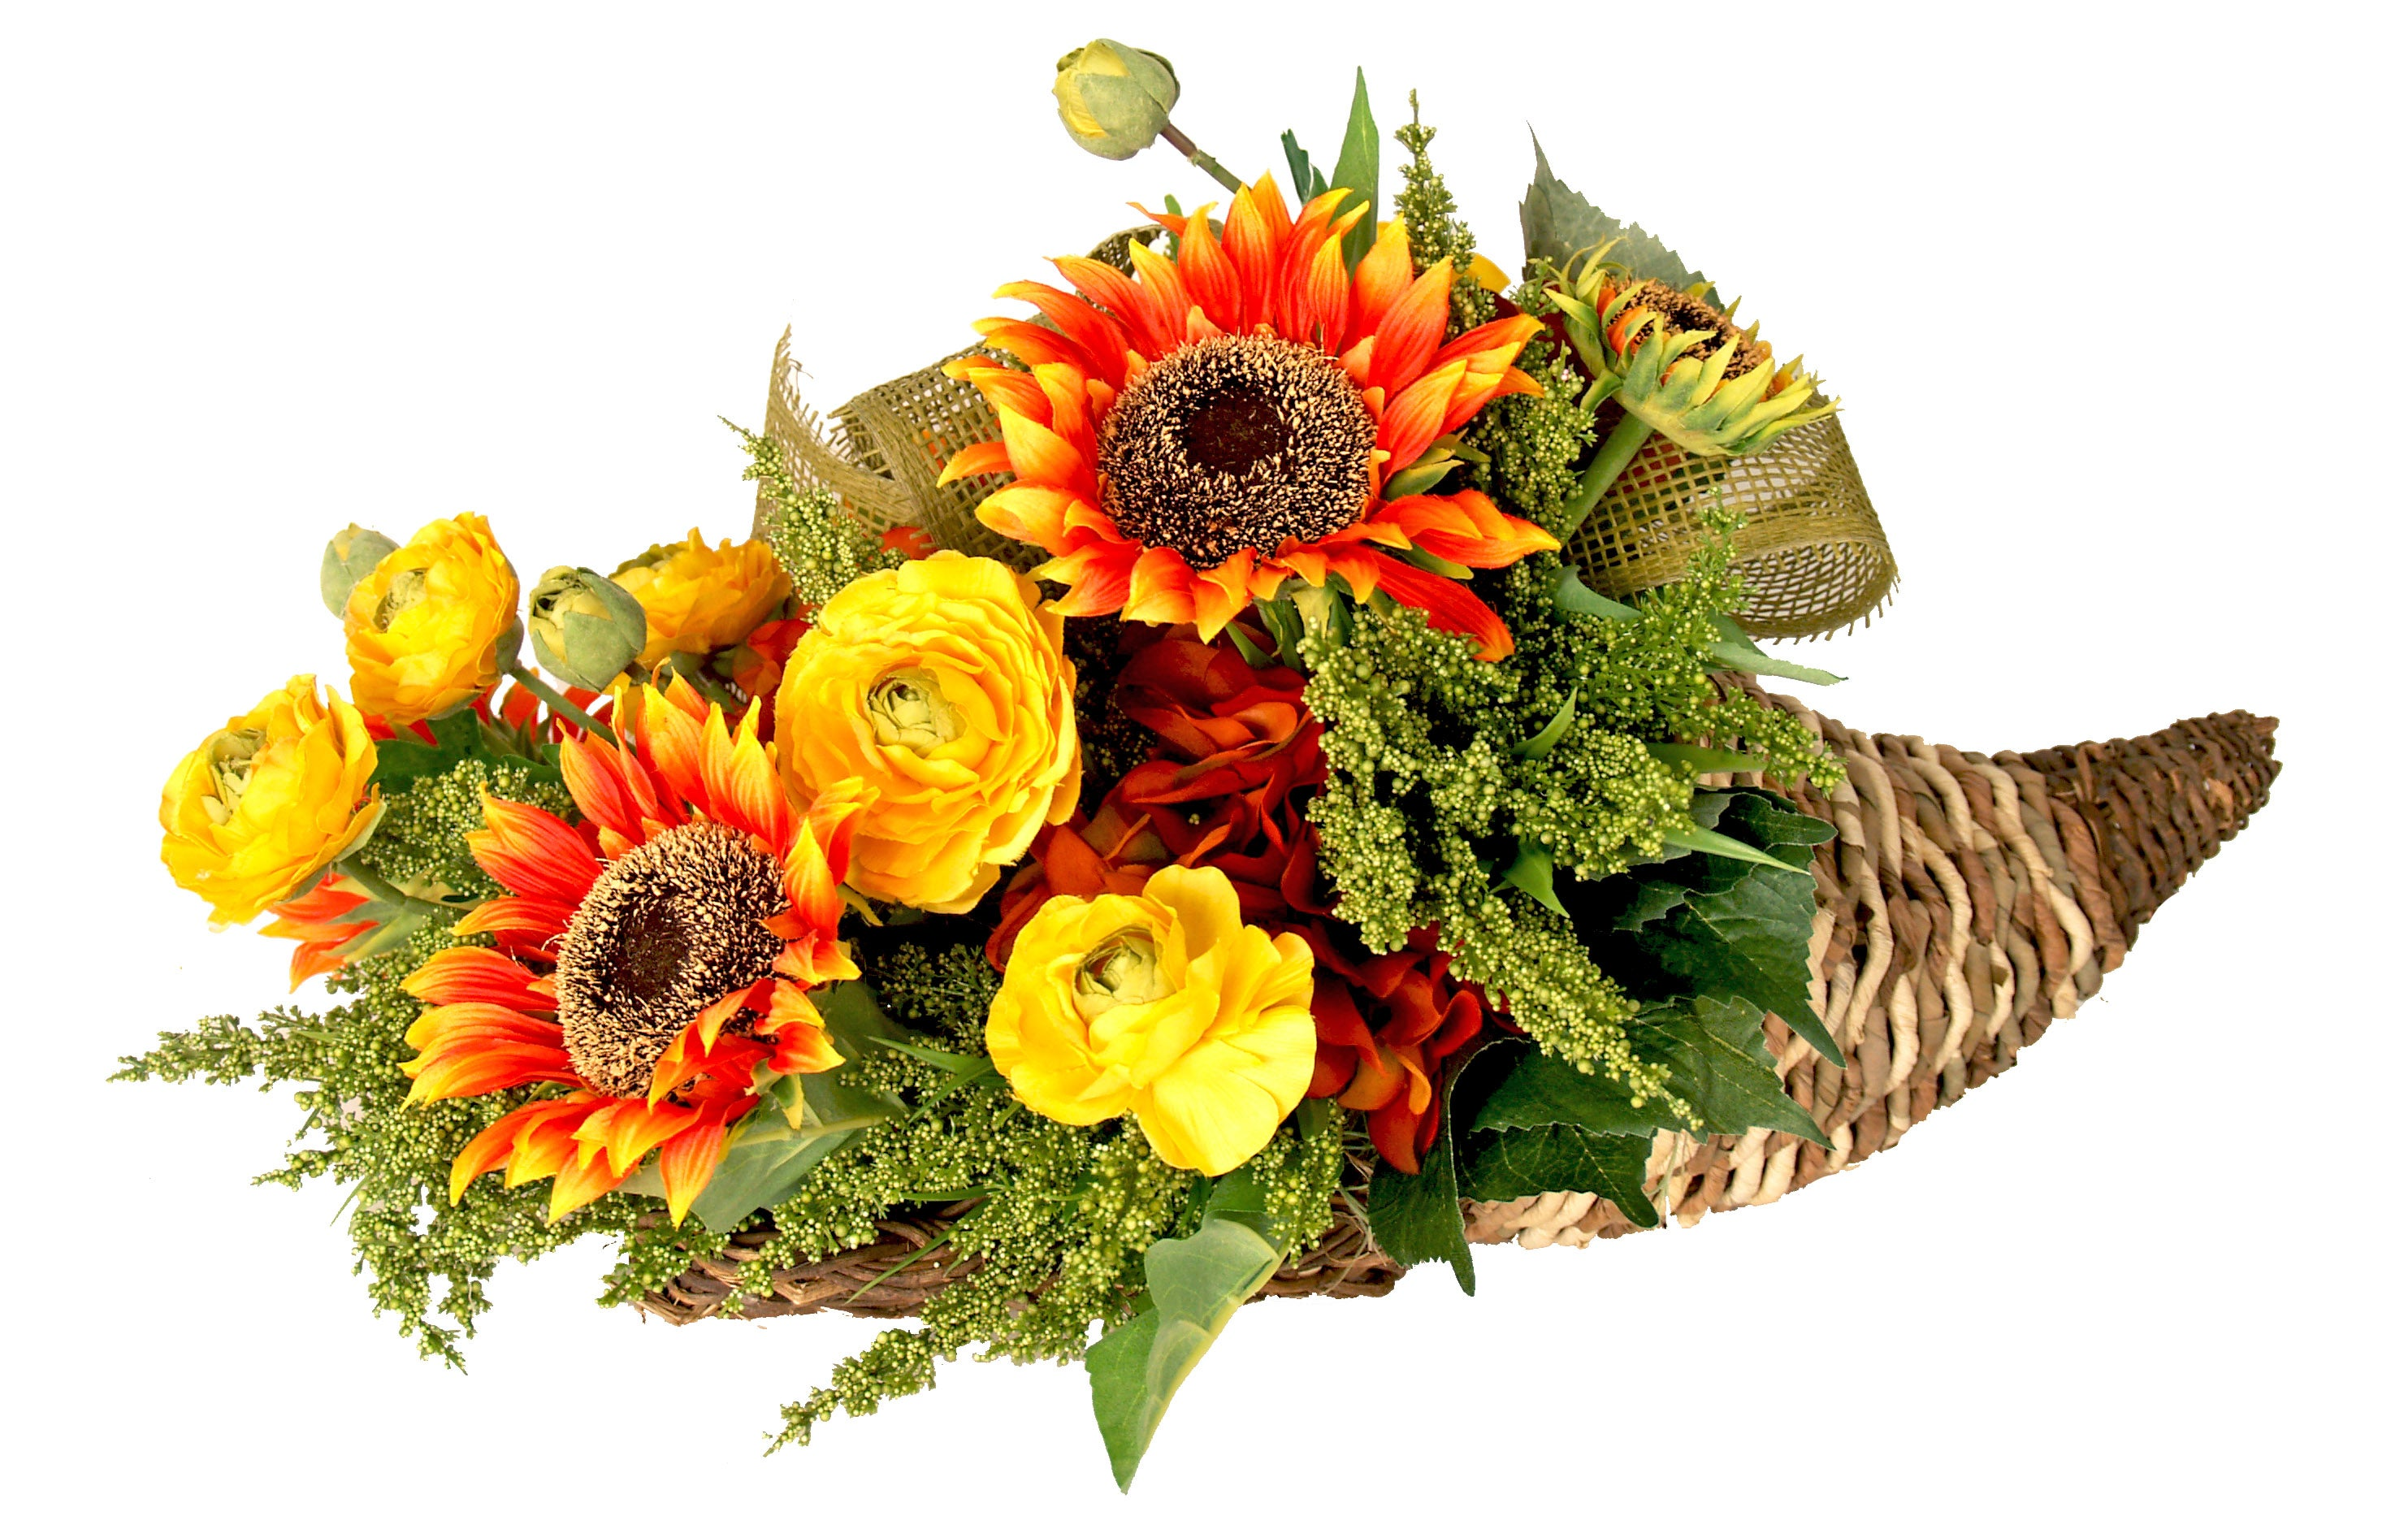 Creative Displays Sunflowers/ Yellow Ranunculus in Fall Cornucopia